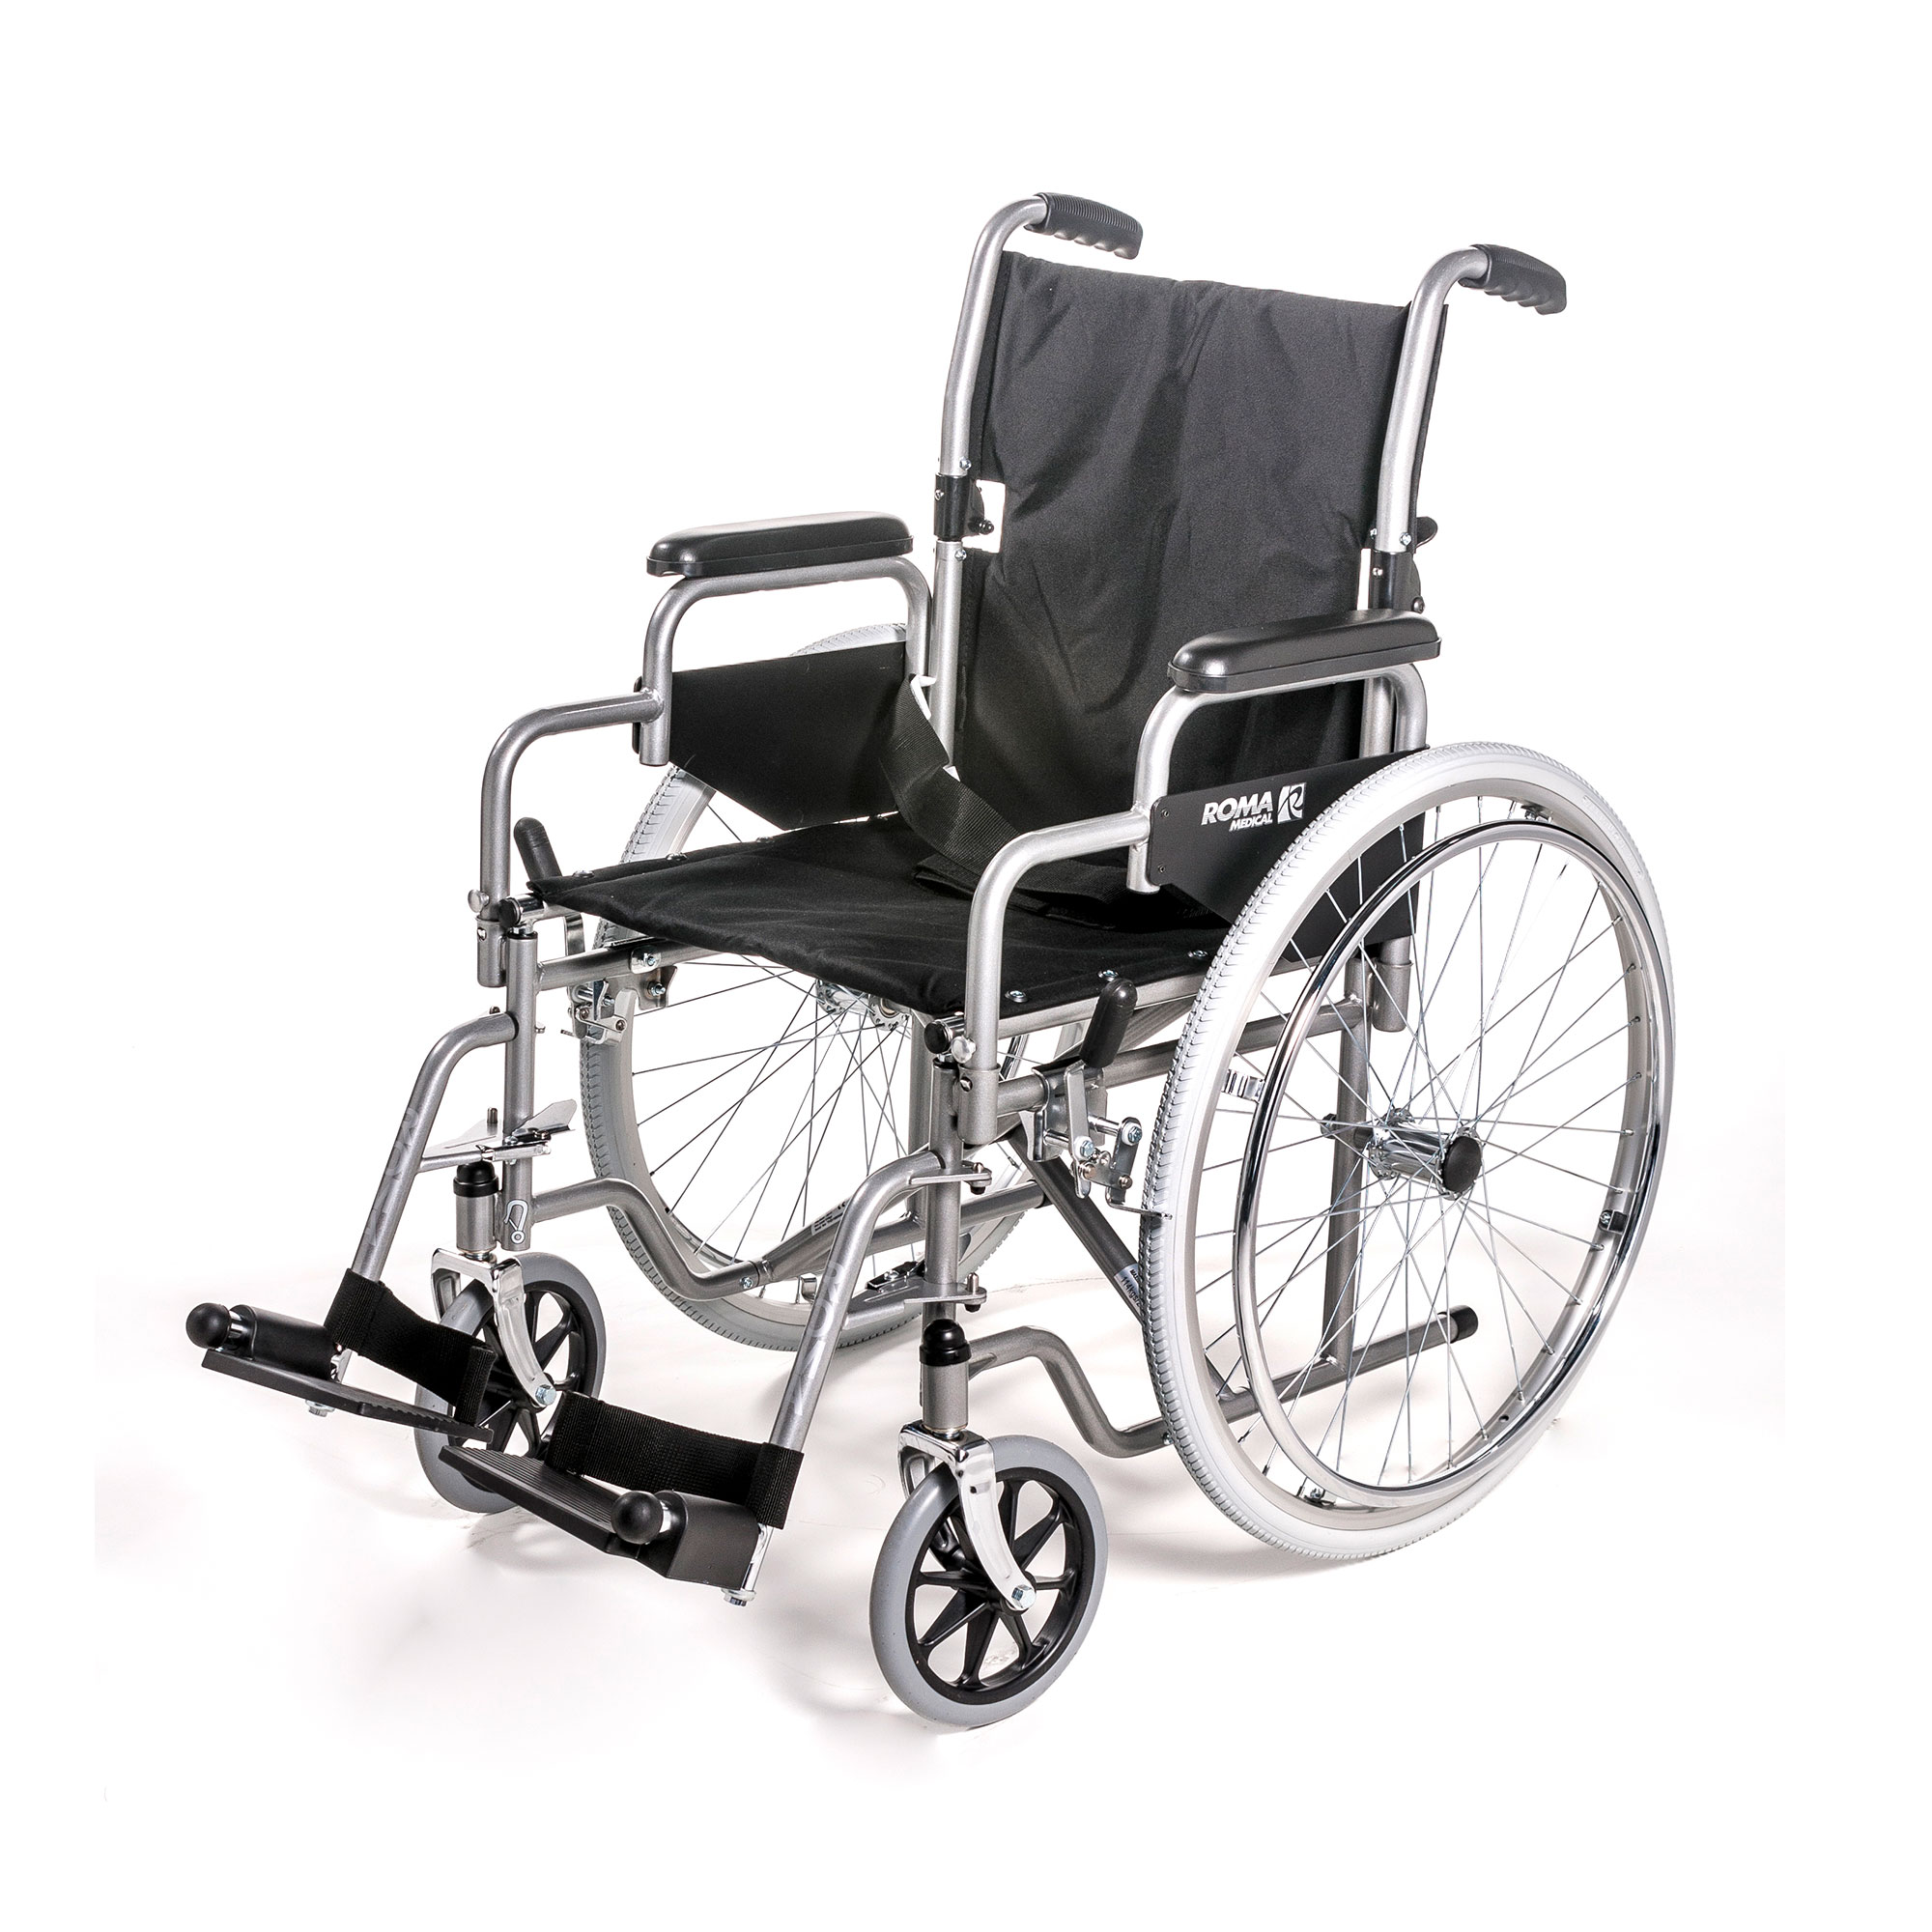 1050: Self-Propelled Wheelchair with Flipback Arms